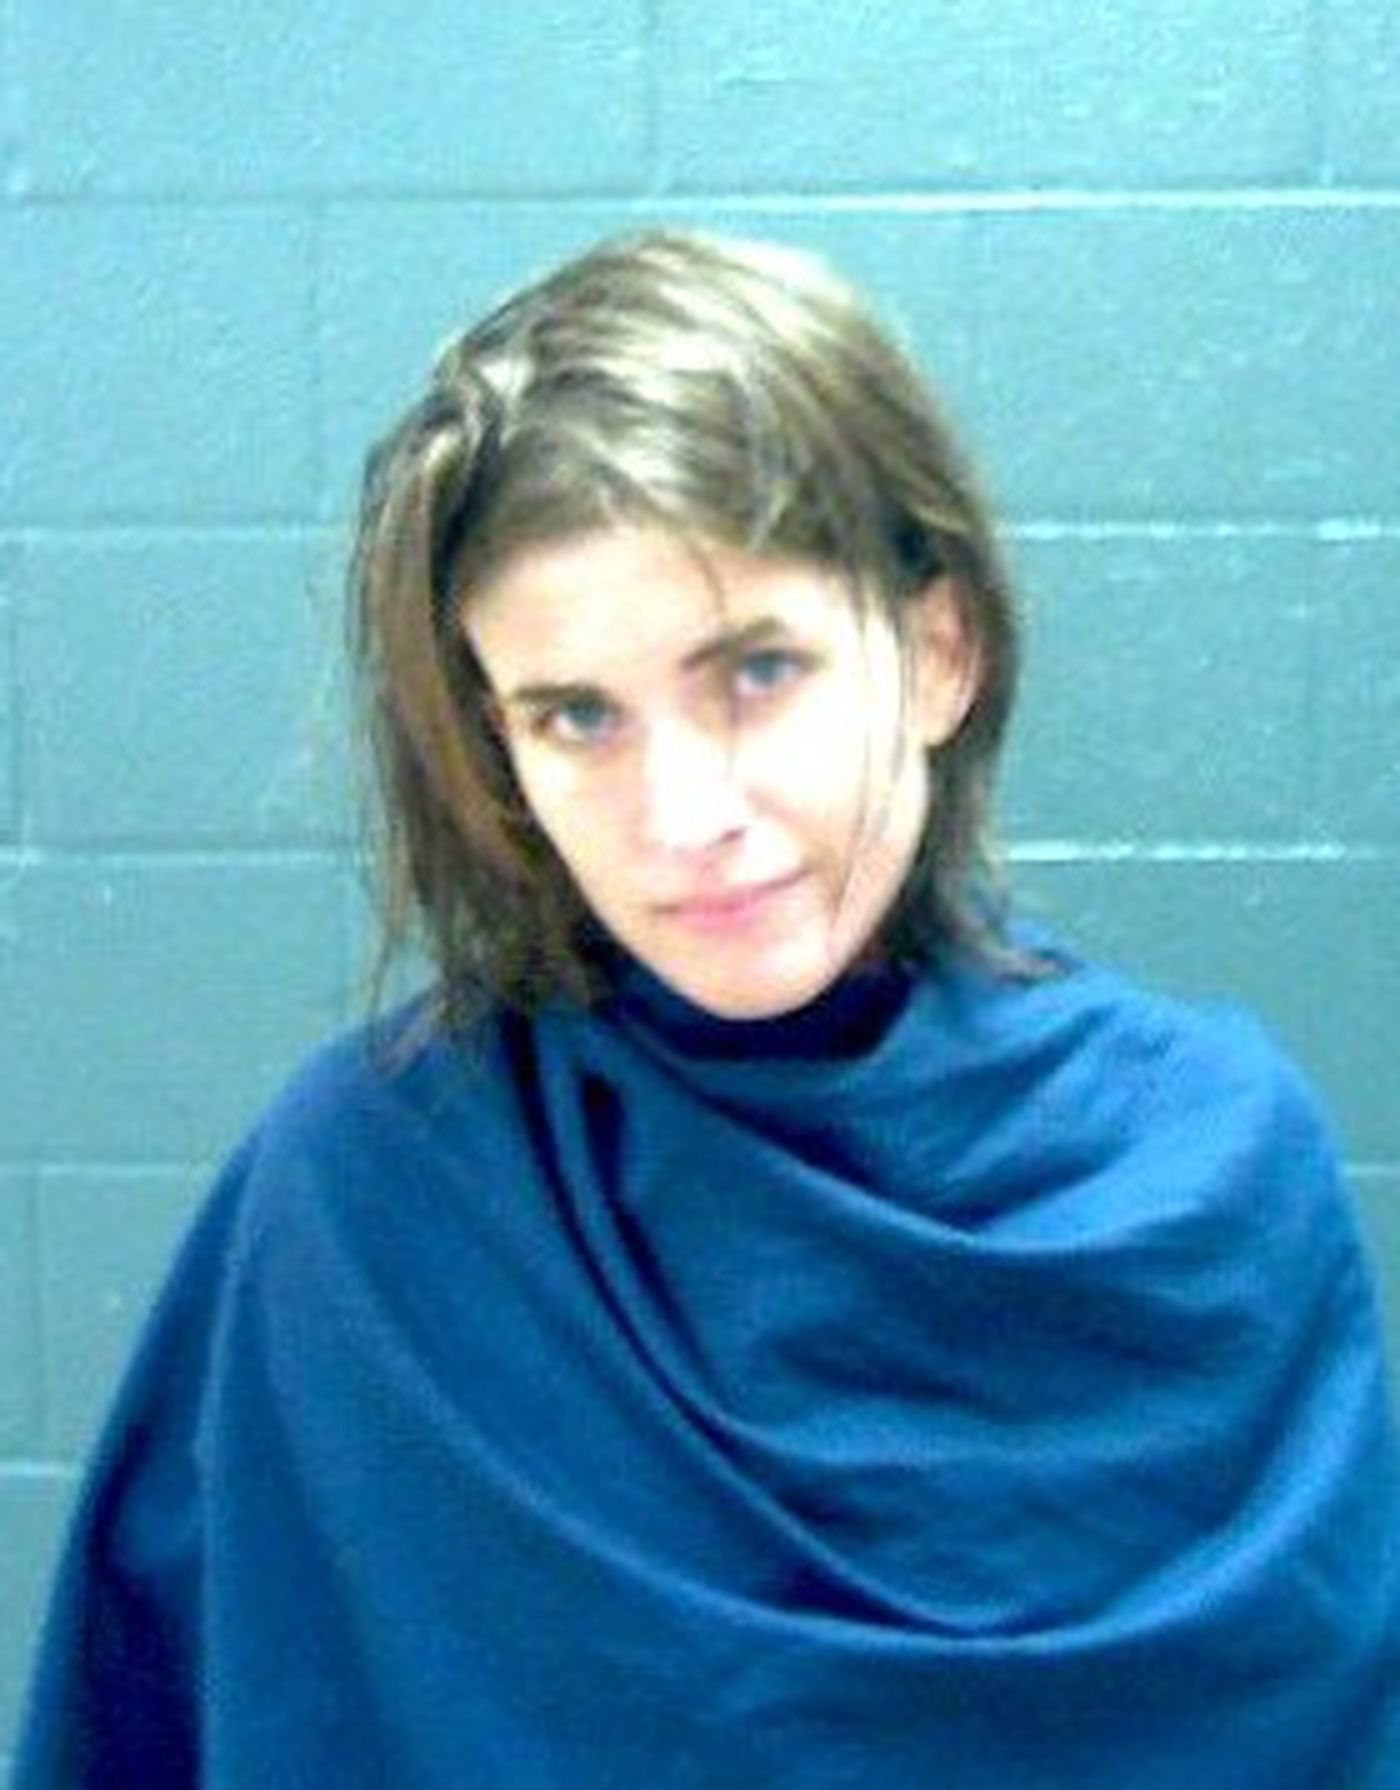 WFPD: Burglar caught by victim moments after committing the